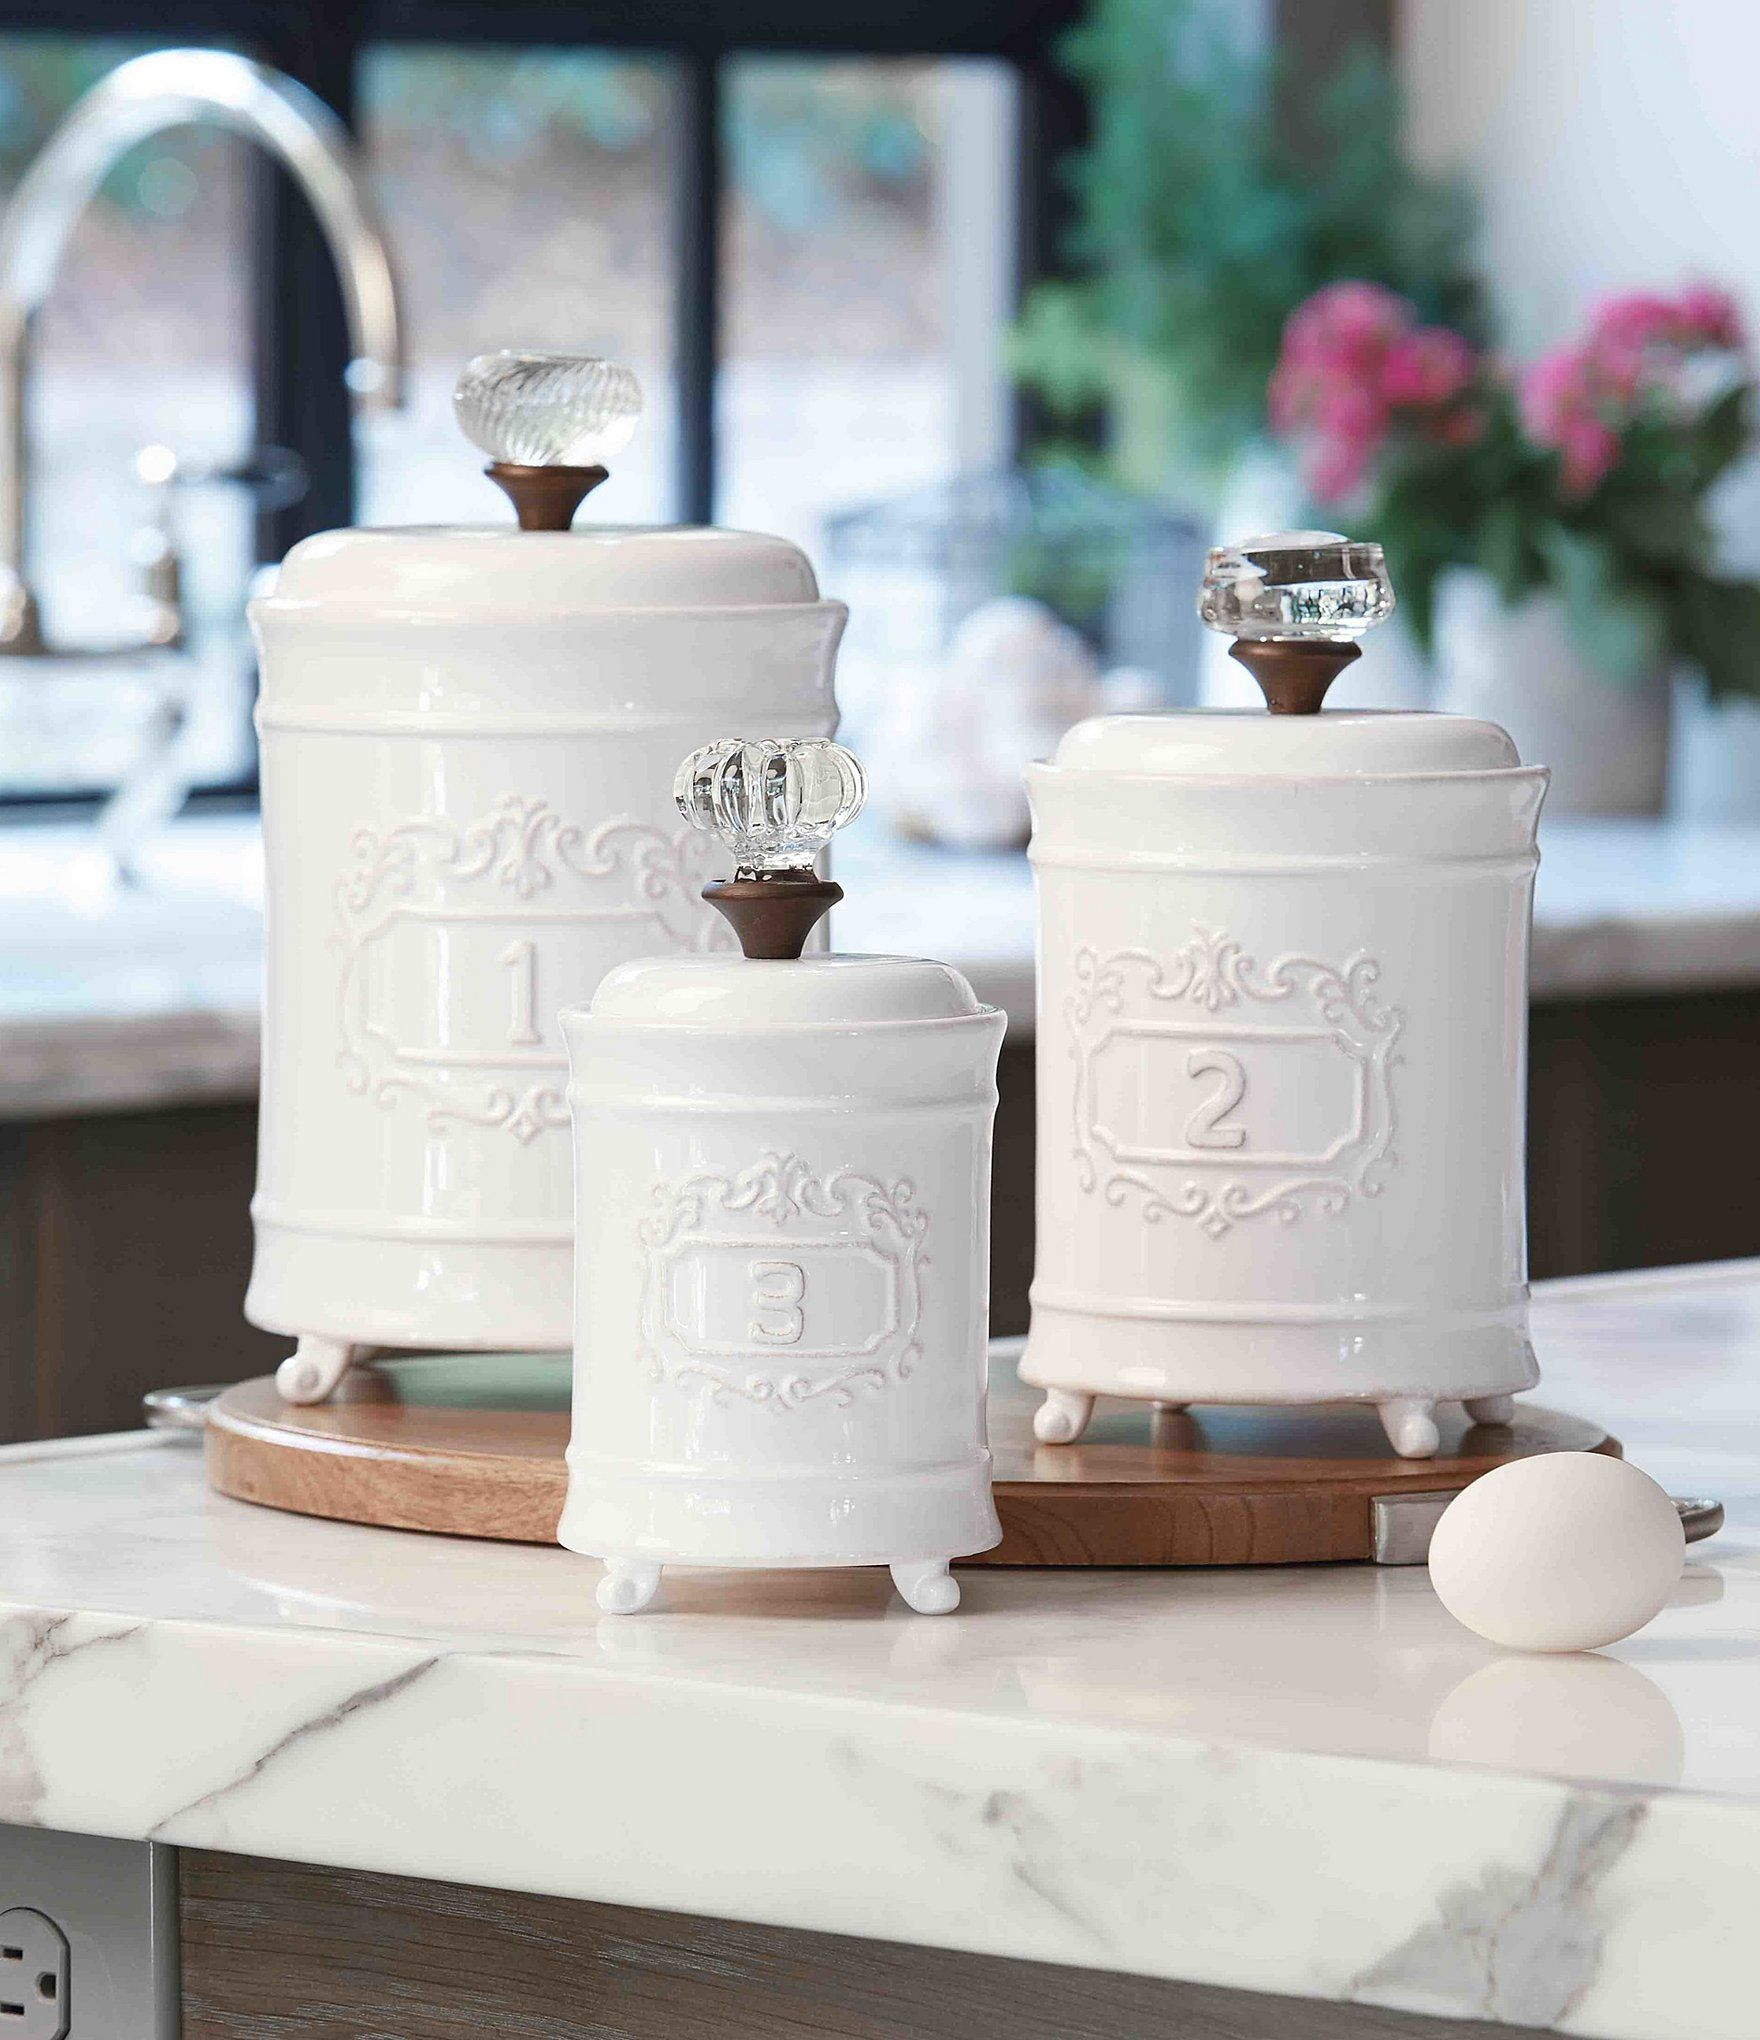 Mud Pie 3Piece Farmhouse Circa Vintage Doorknob Canister Set is part of White Home Accessories Country Kitchens - From the Circa collection by Mud Pie, these canisters featurelids with vintagestyle glass doorknob handlesembossed 1, 2 and 3 identifiersfooted basesmall approx  7 5double;medium approx  9 x 5double;large approx  10 x 6double;ceramichand washImported